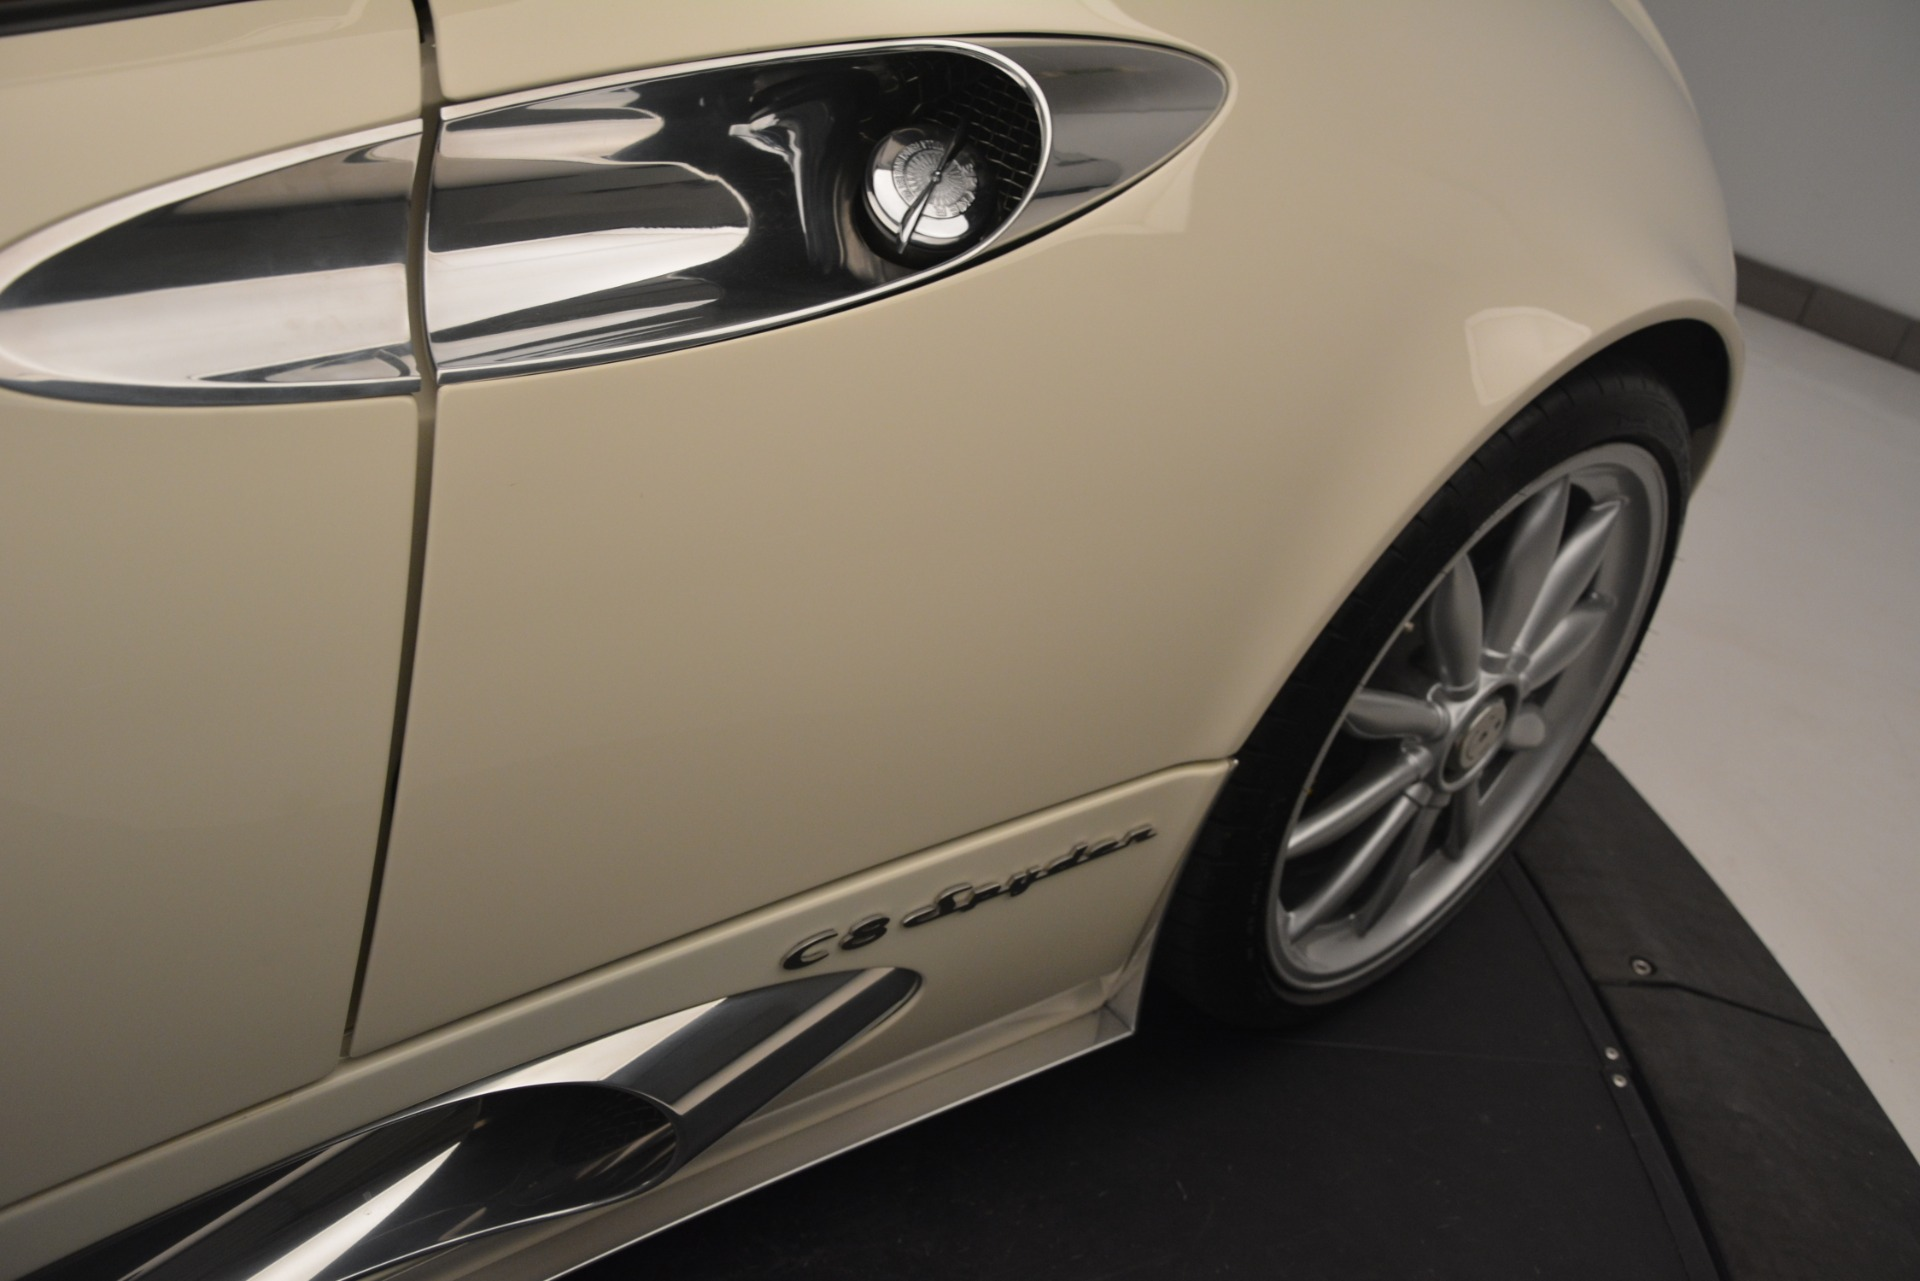 Used 2006 Spyker C8 Spyder  For Sale In Greenwich, CT 1661_p27